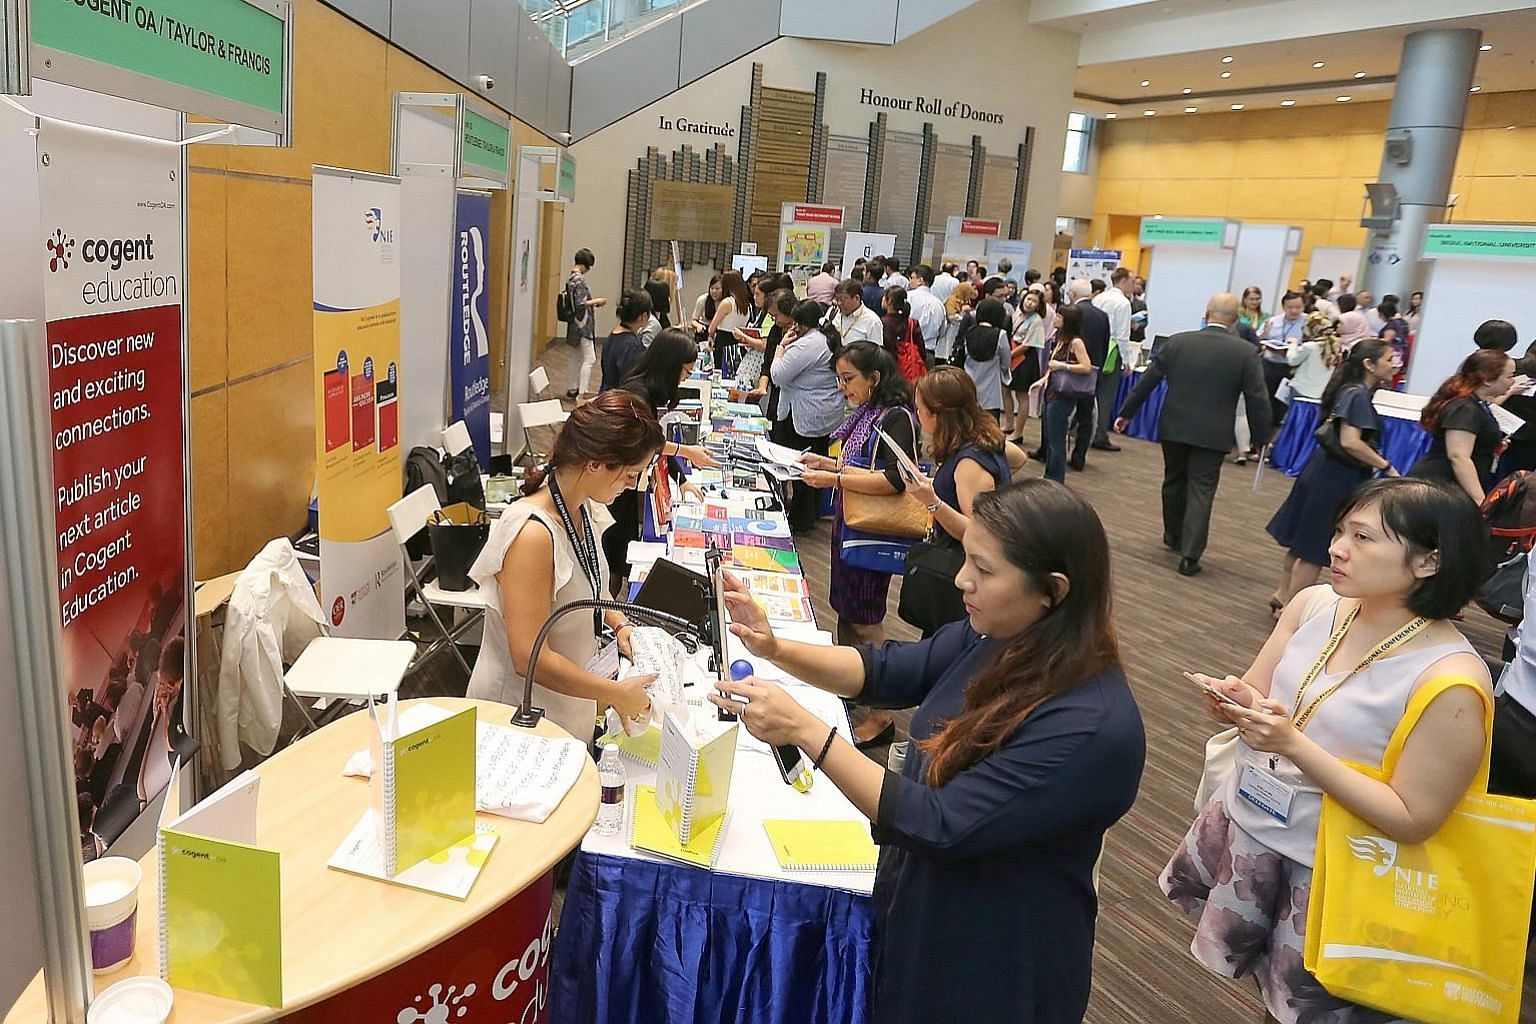 A showcase at last week's Redesigning Pedagogy International Conference. There were seven booths featuring publishers and education vendors and two school showcases put up by Yusof Ishak and Teck Whye secondary schools. (From left) Prof David Carr, P